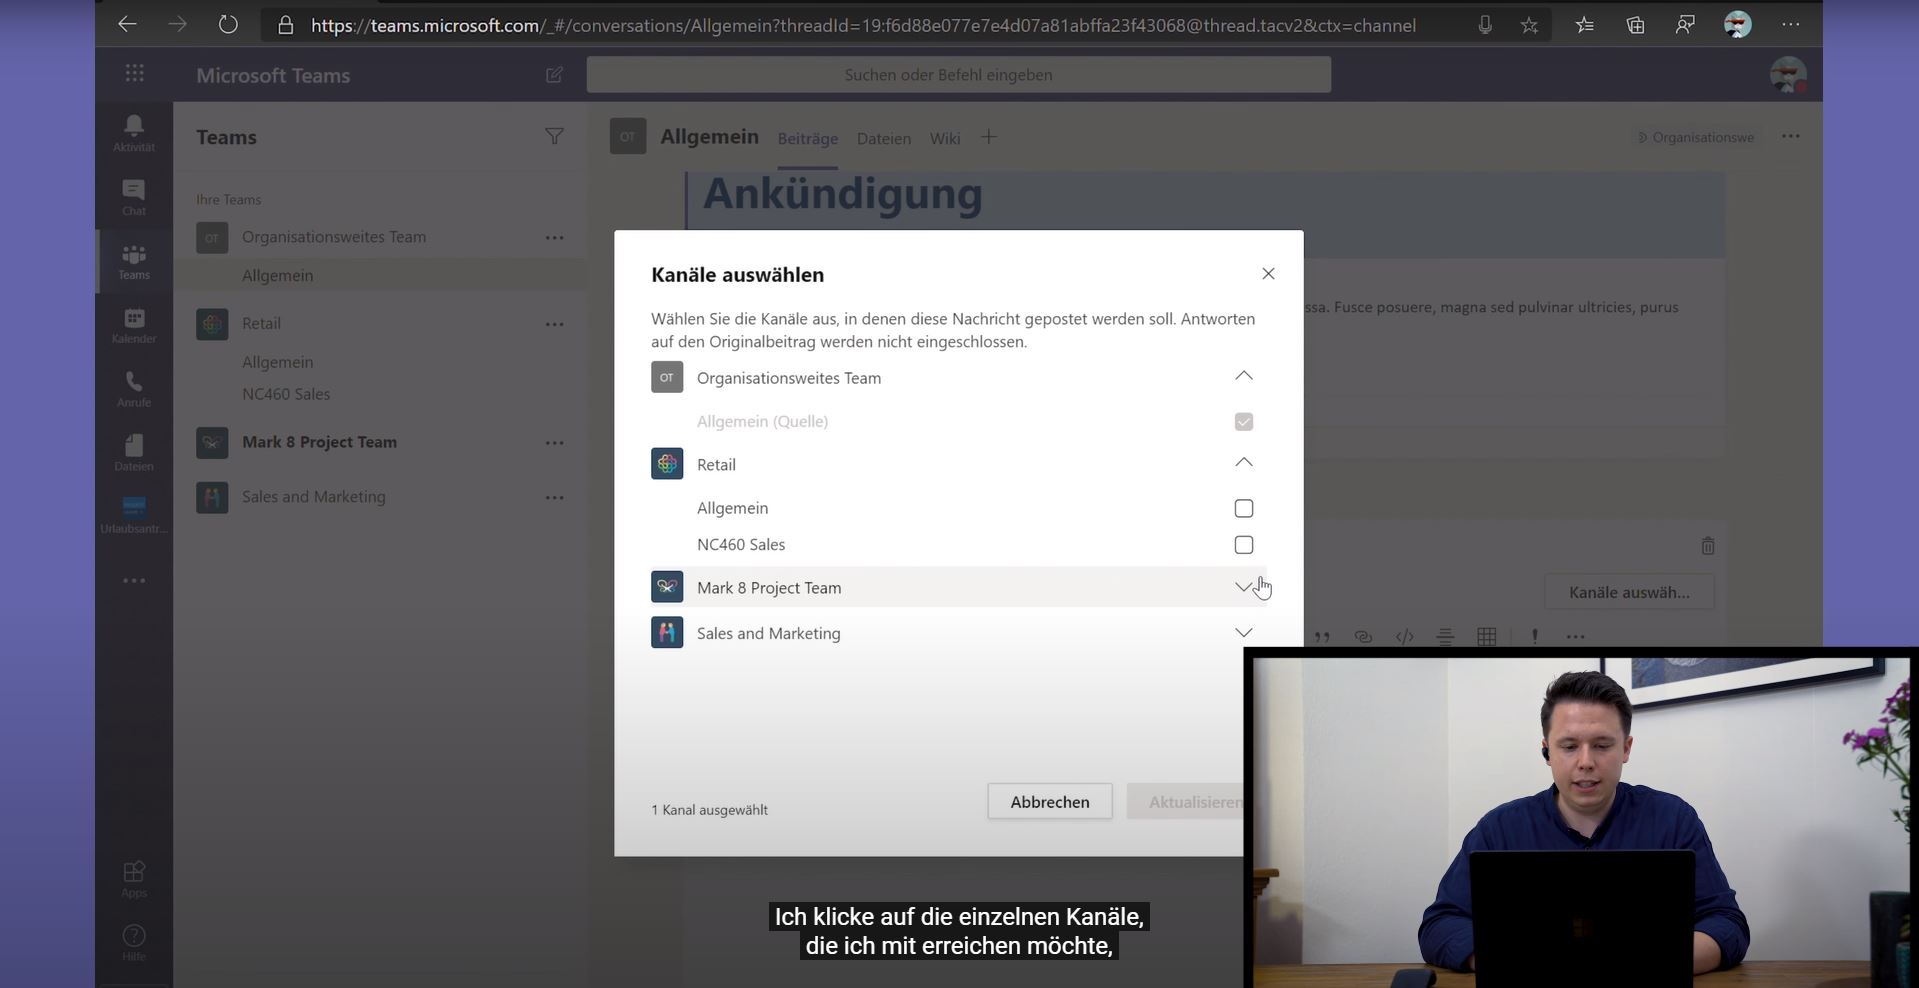 Video Vorschaubild Postings in mehreren Channels und Teams